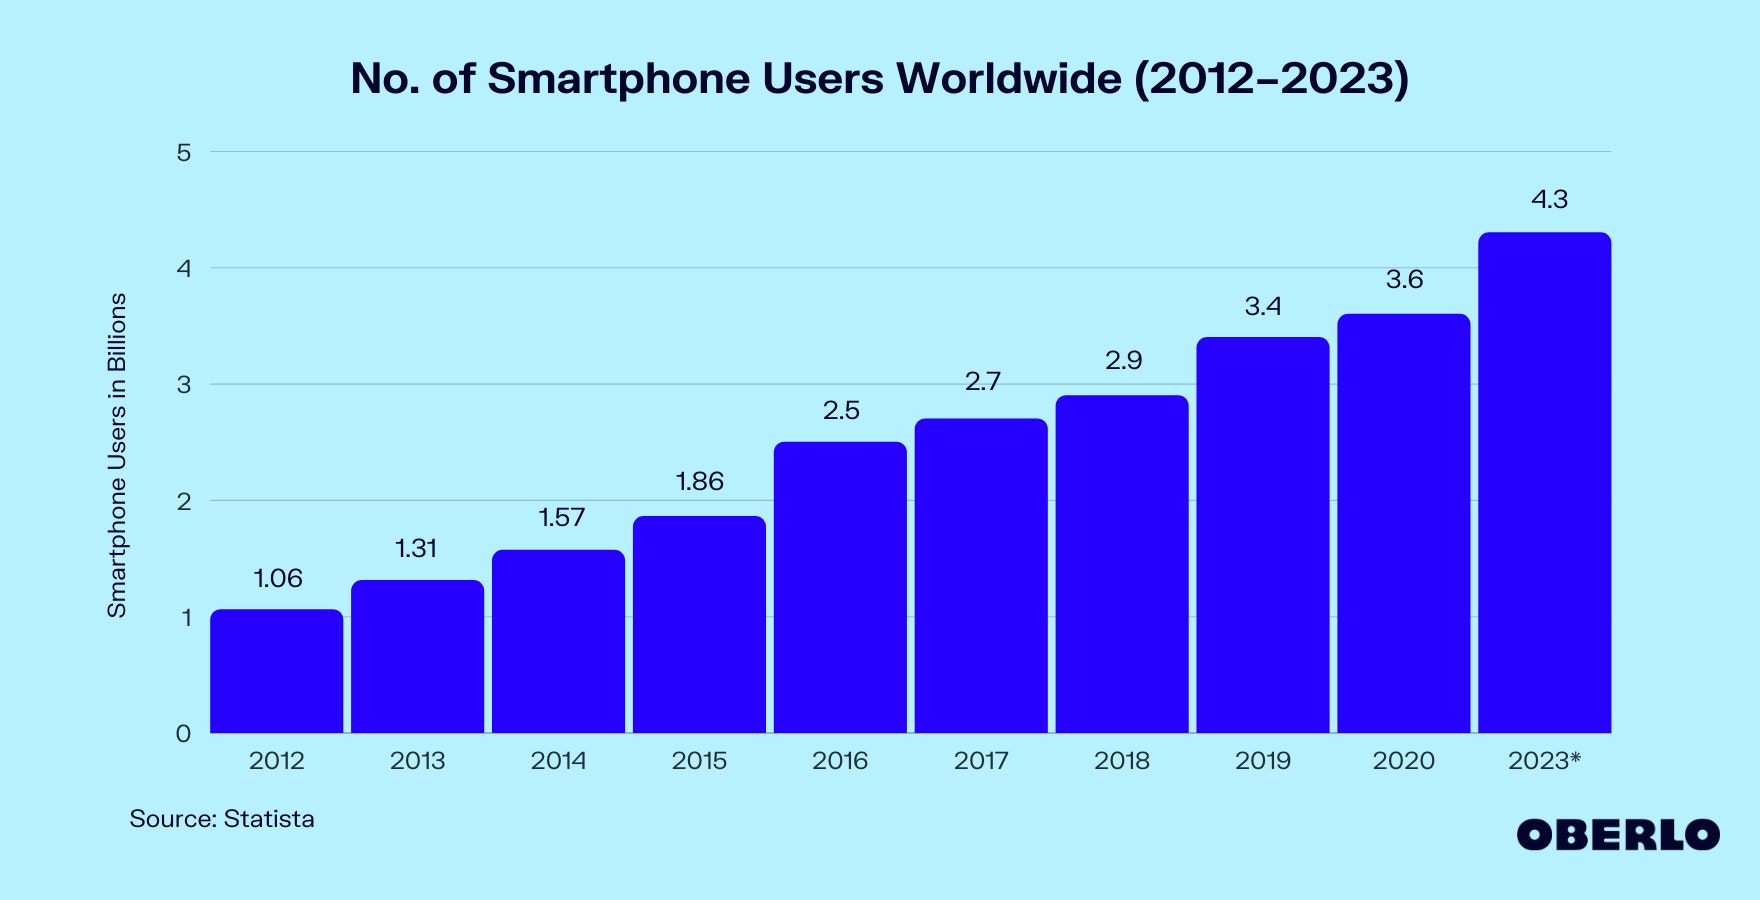 Graphic of How Many People Have Smartphones in 2021?